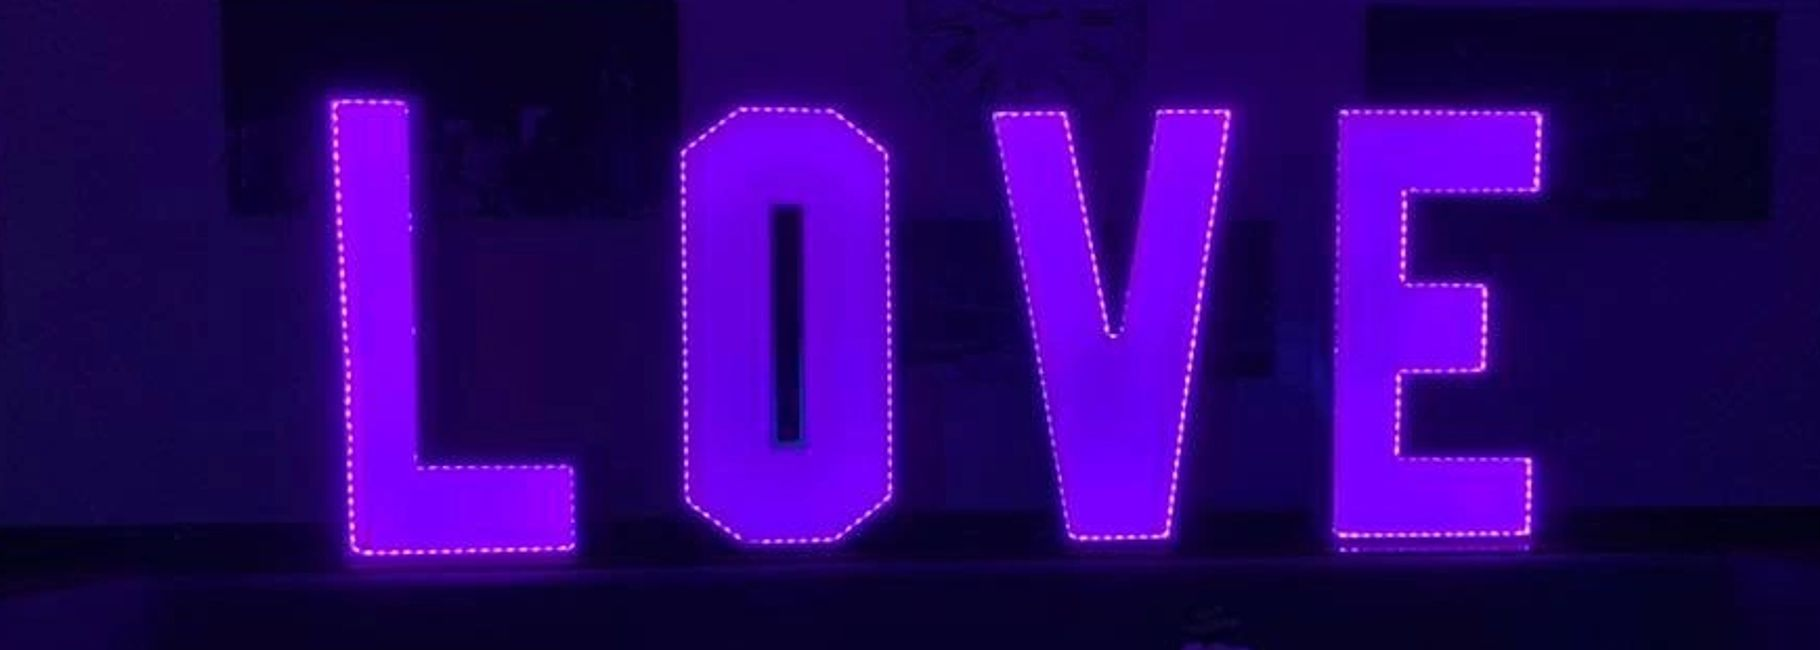 Love letters in a purple colour